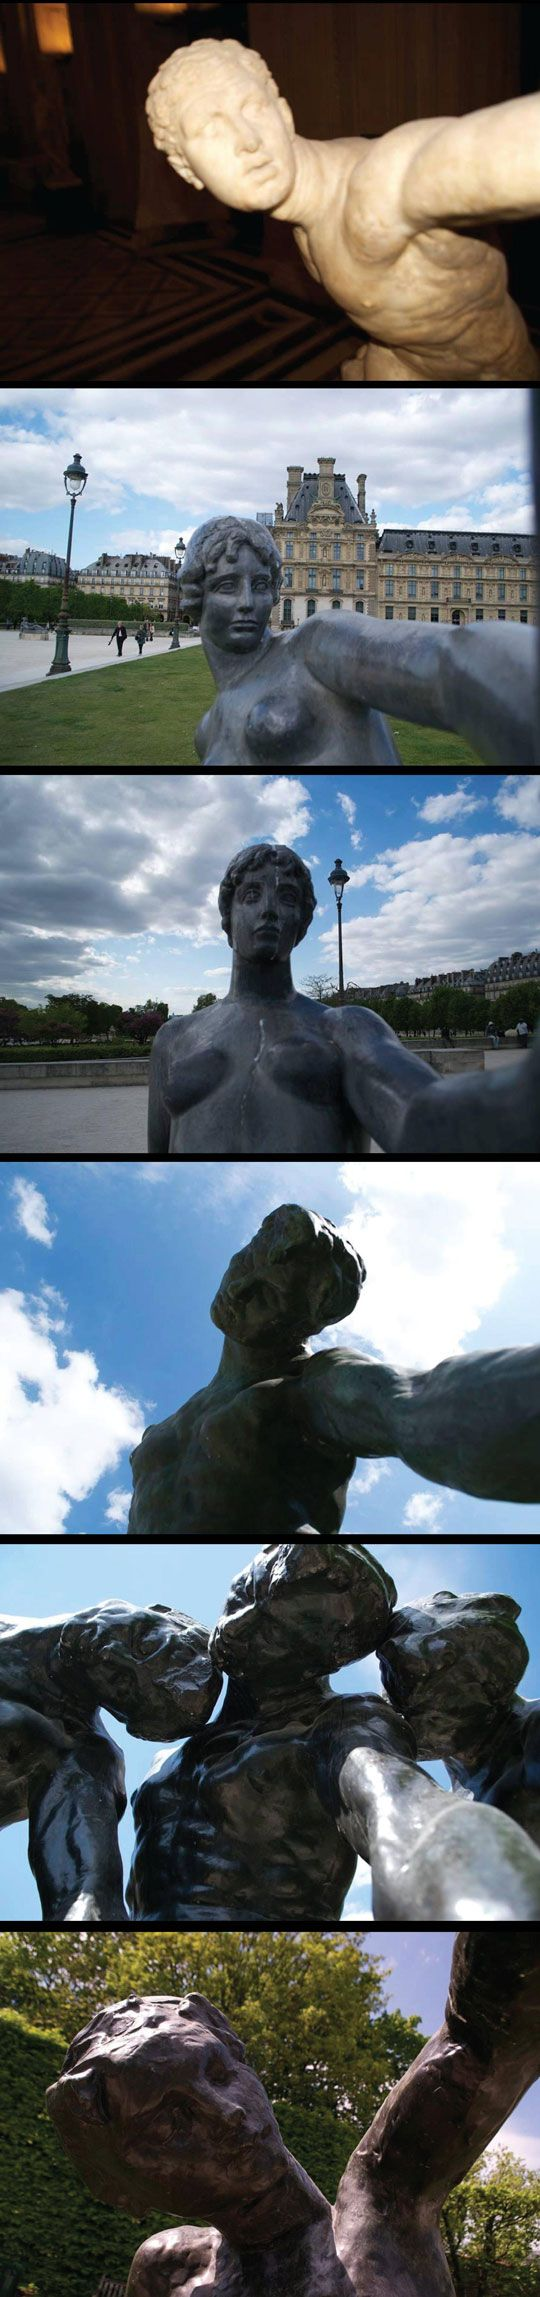 """Weeping Angel selfies. """"Dude, stop blinking at the camera!"""" """"I can't help it! The people never blink and its getting to me!"""""""